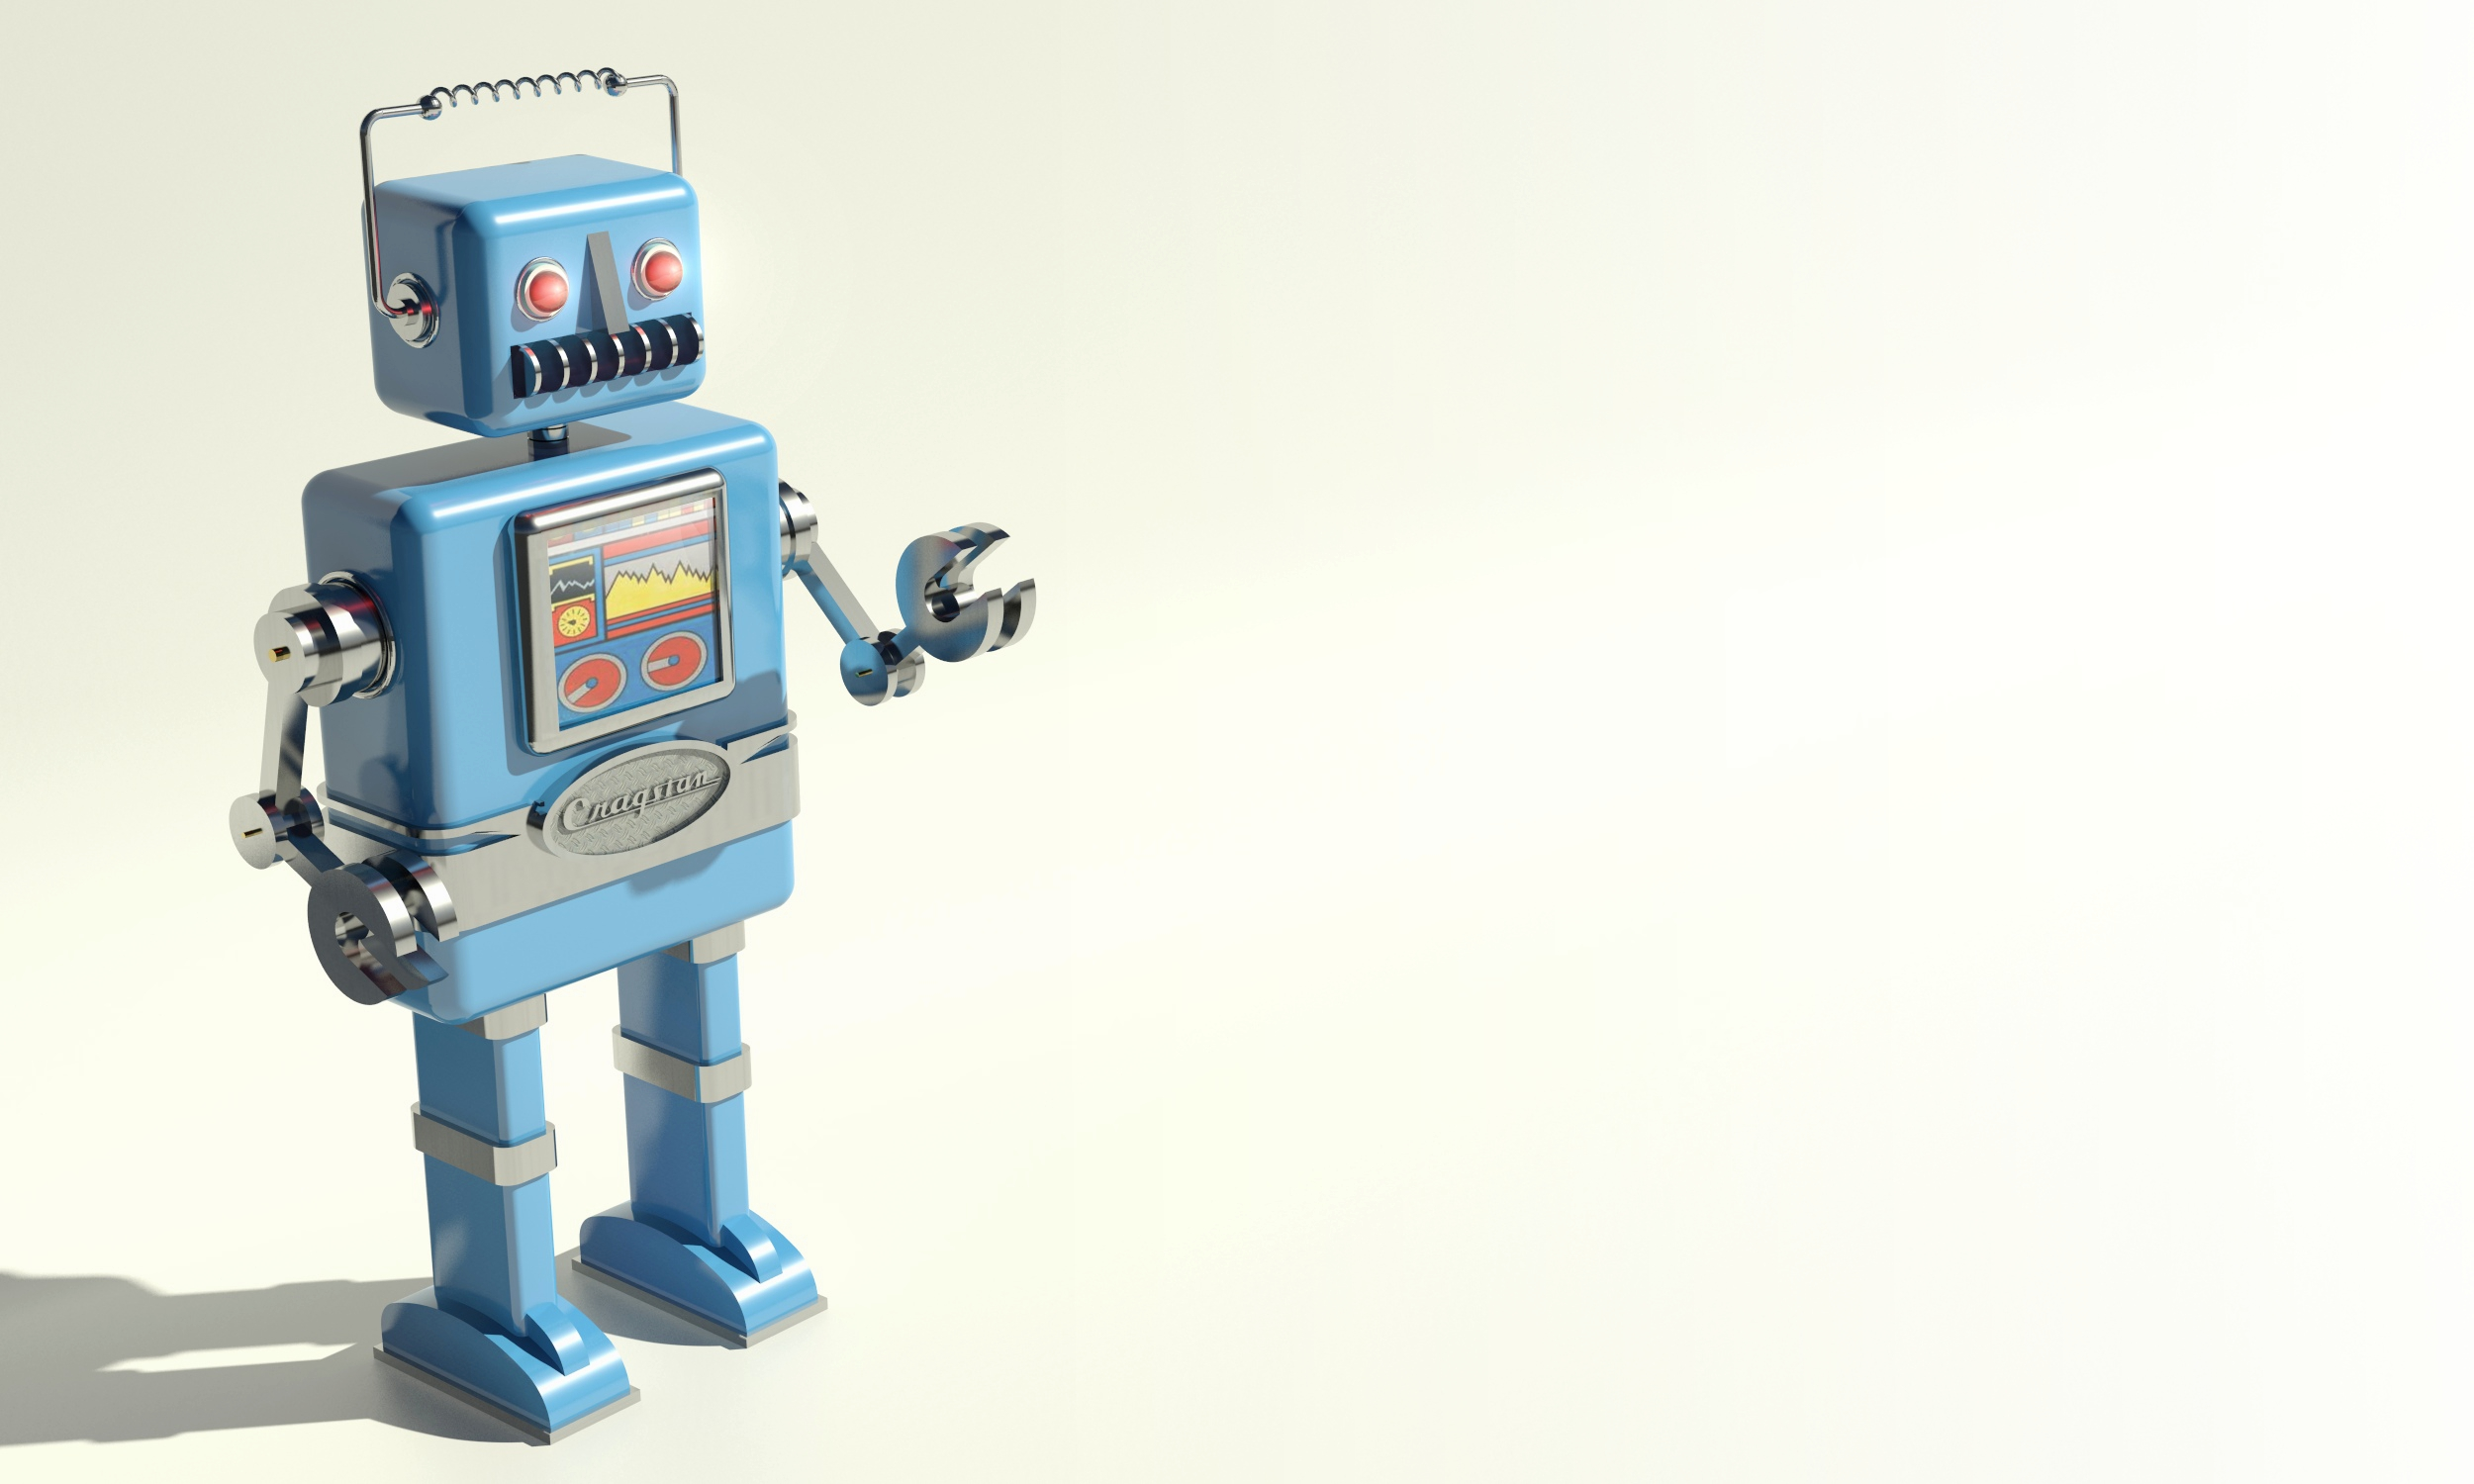 Retro Robot Wallpaper Images Pictures   Becuo 2500x1500